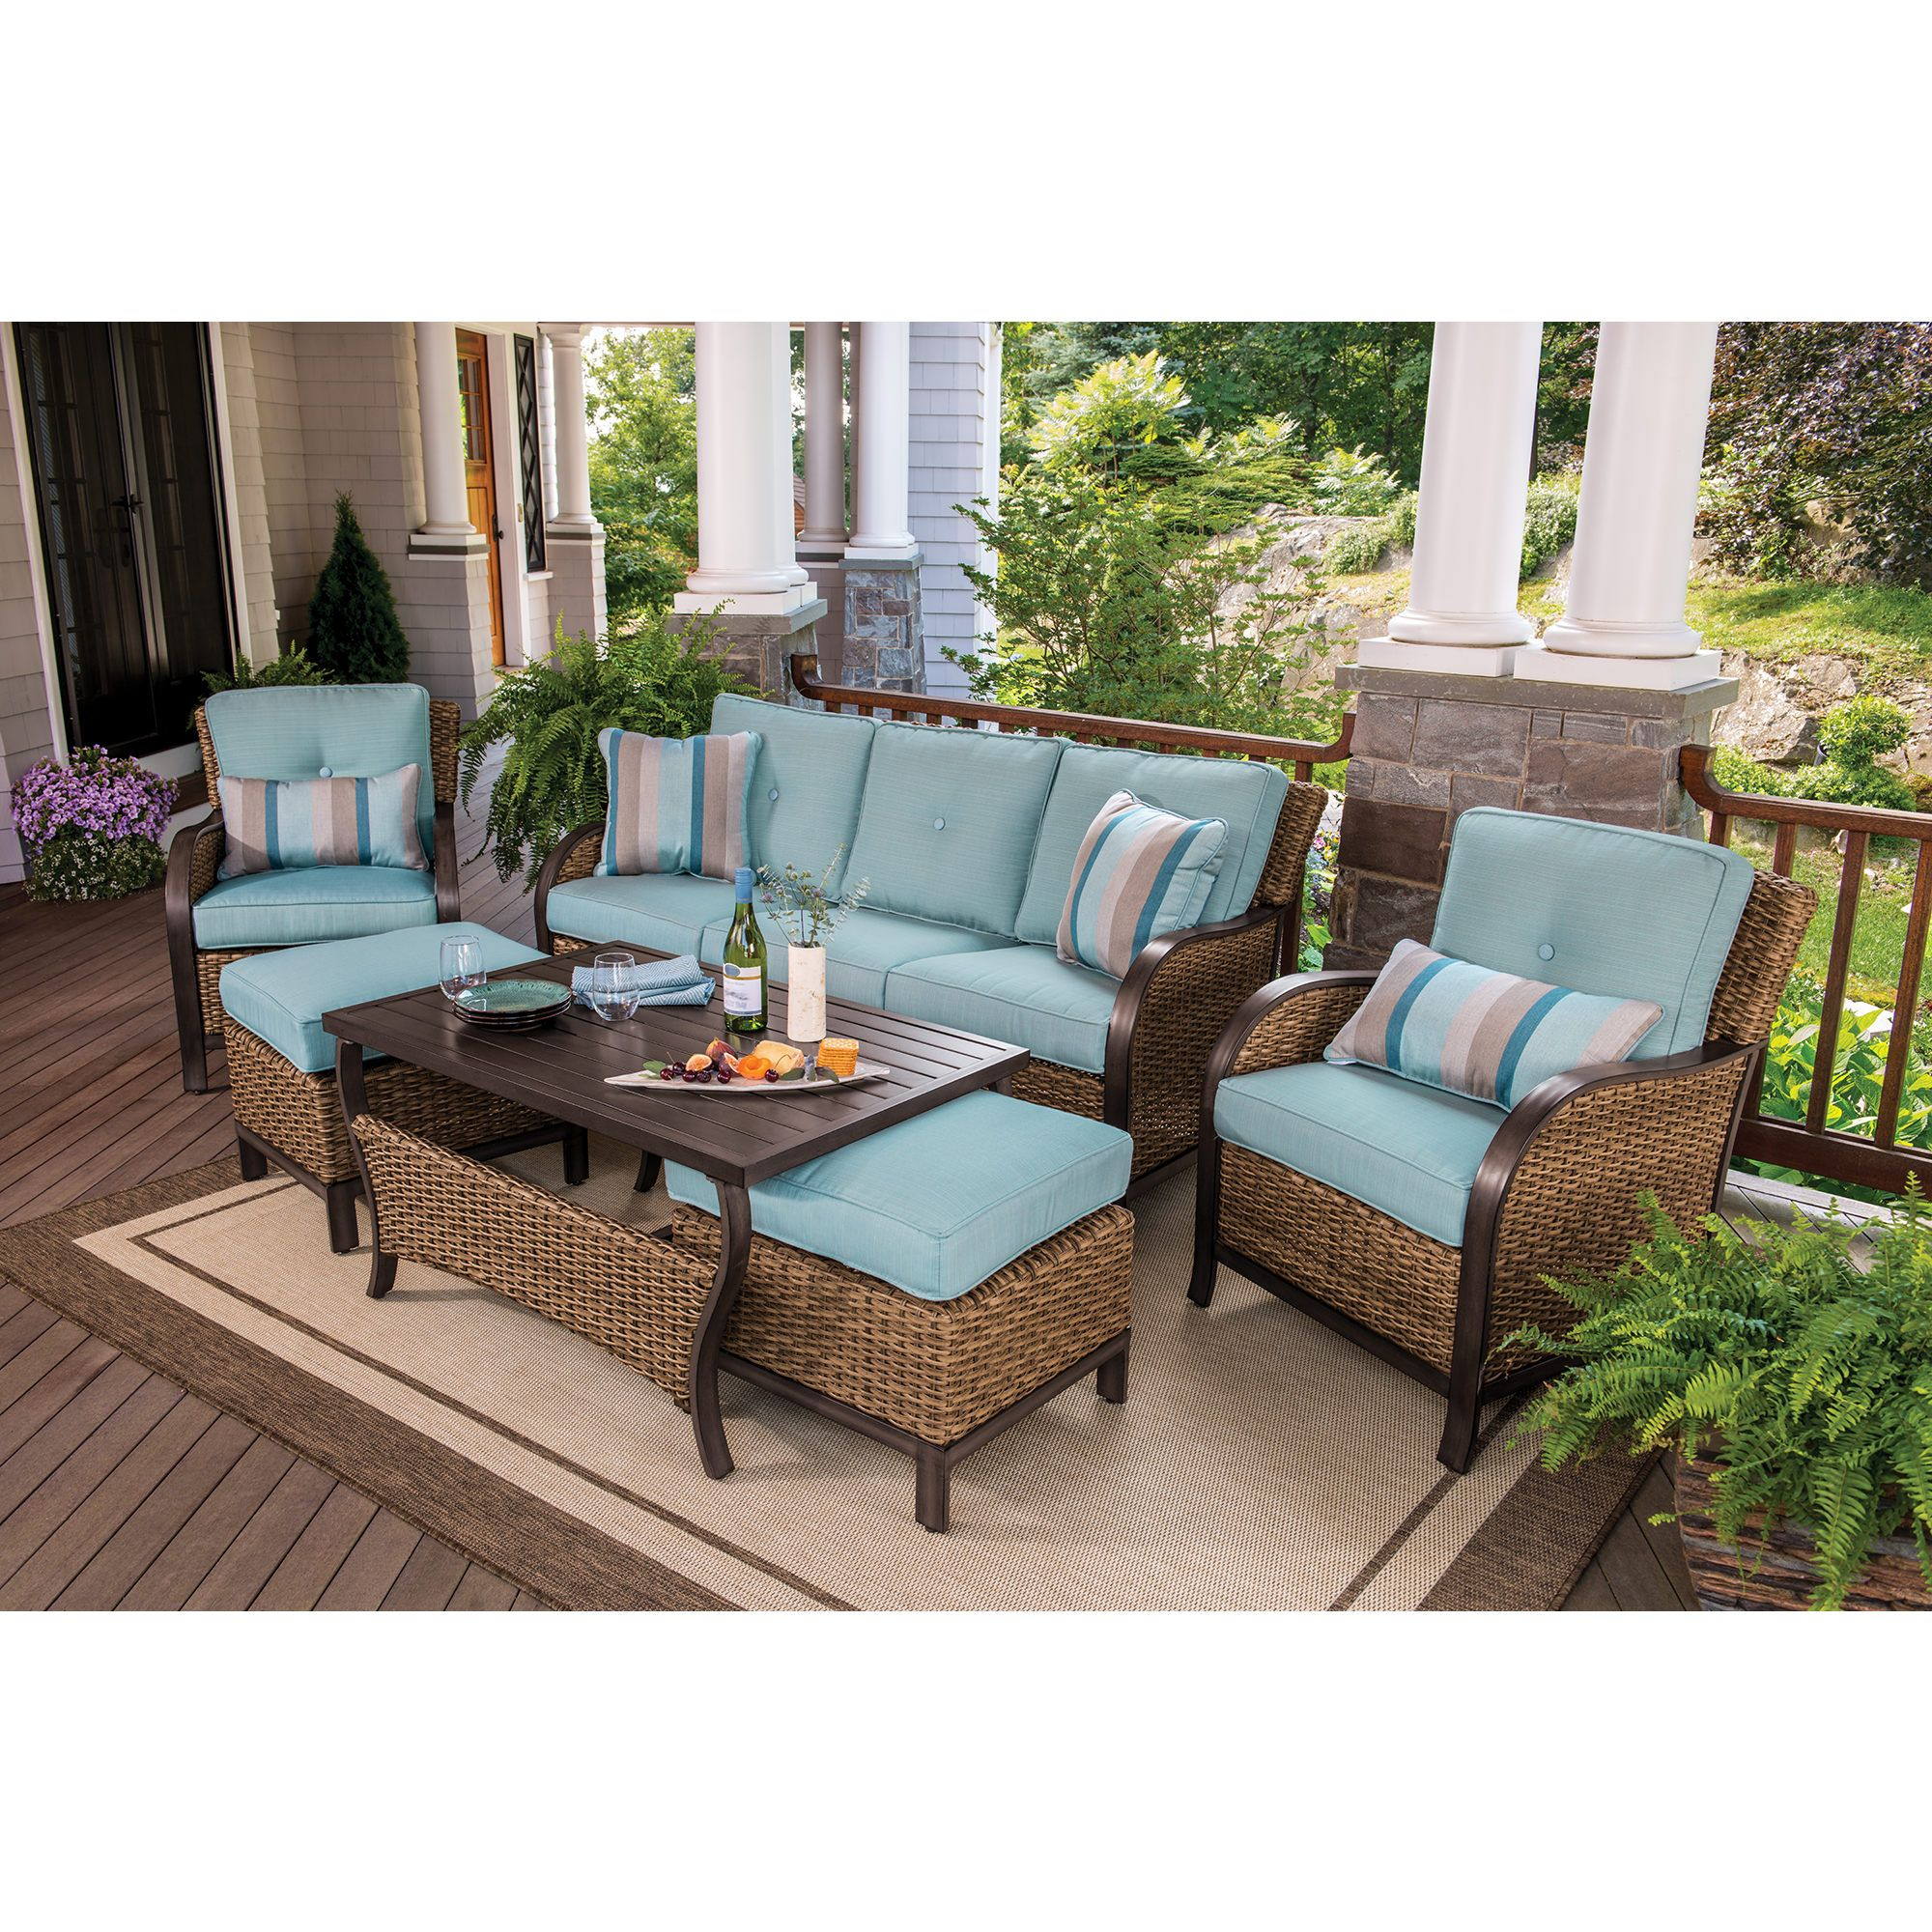 Berkley jensen nantucket 6 piece wicker patio set bjs for Home design 6 piece patio set